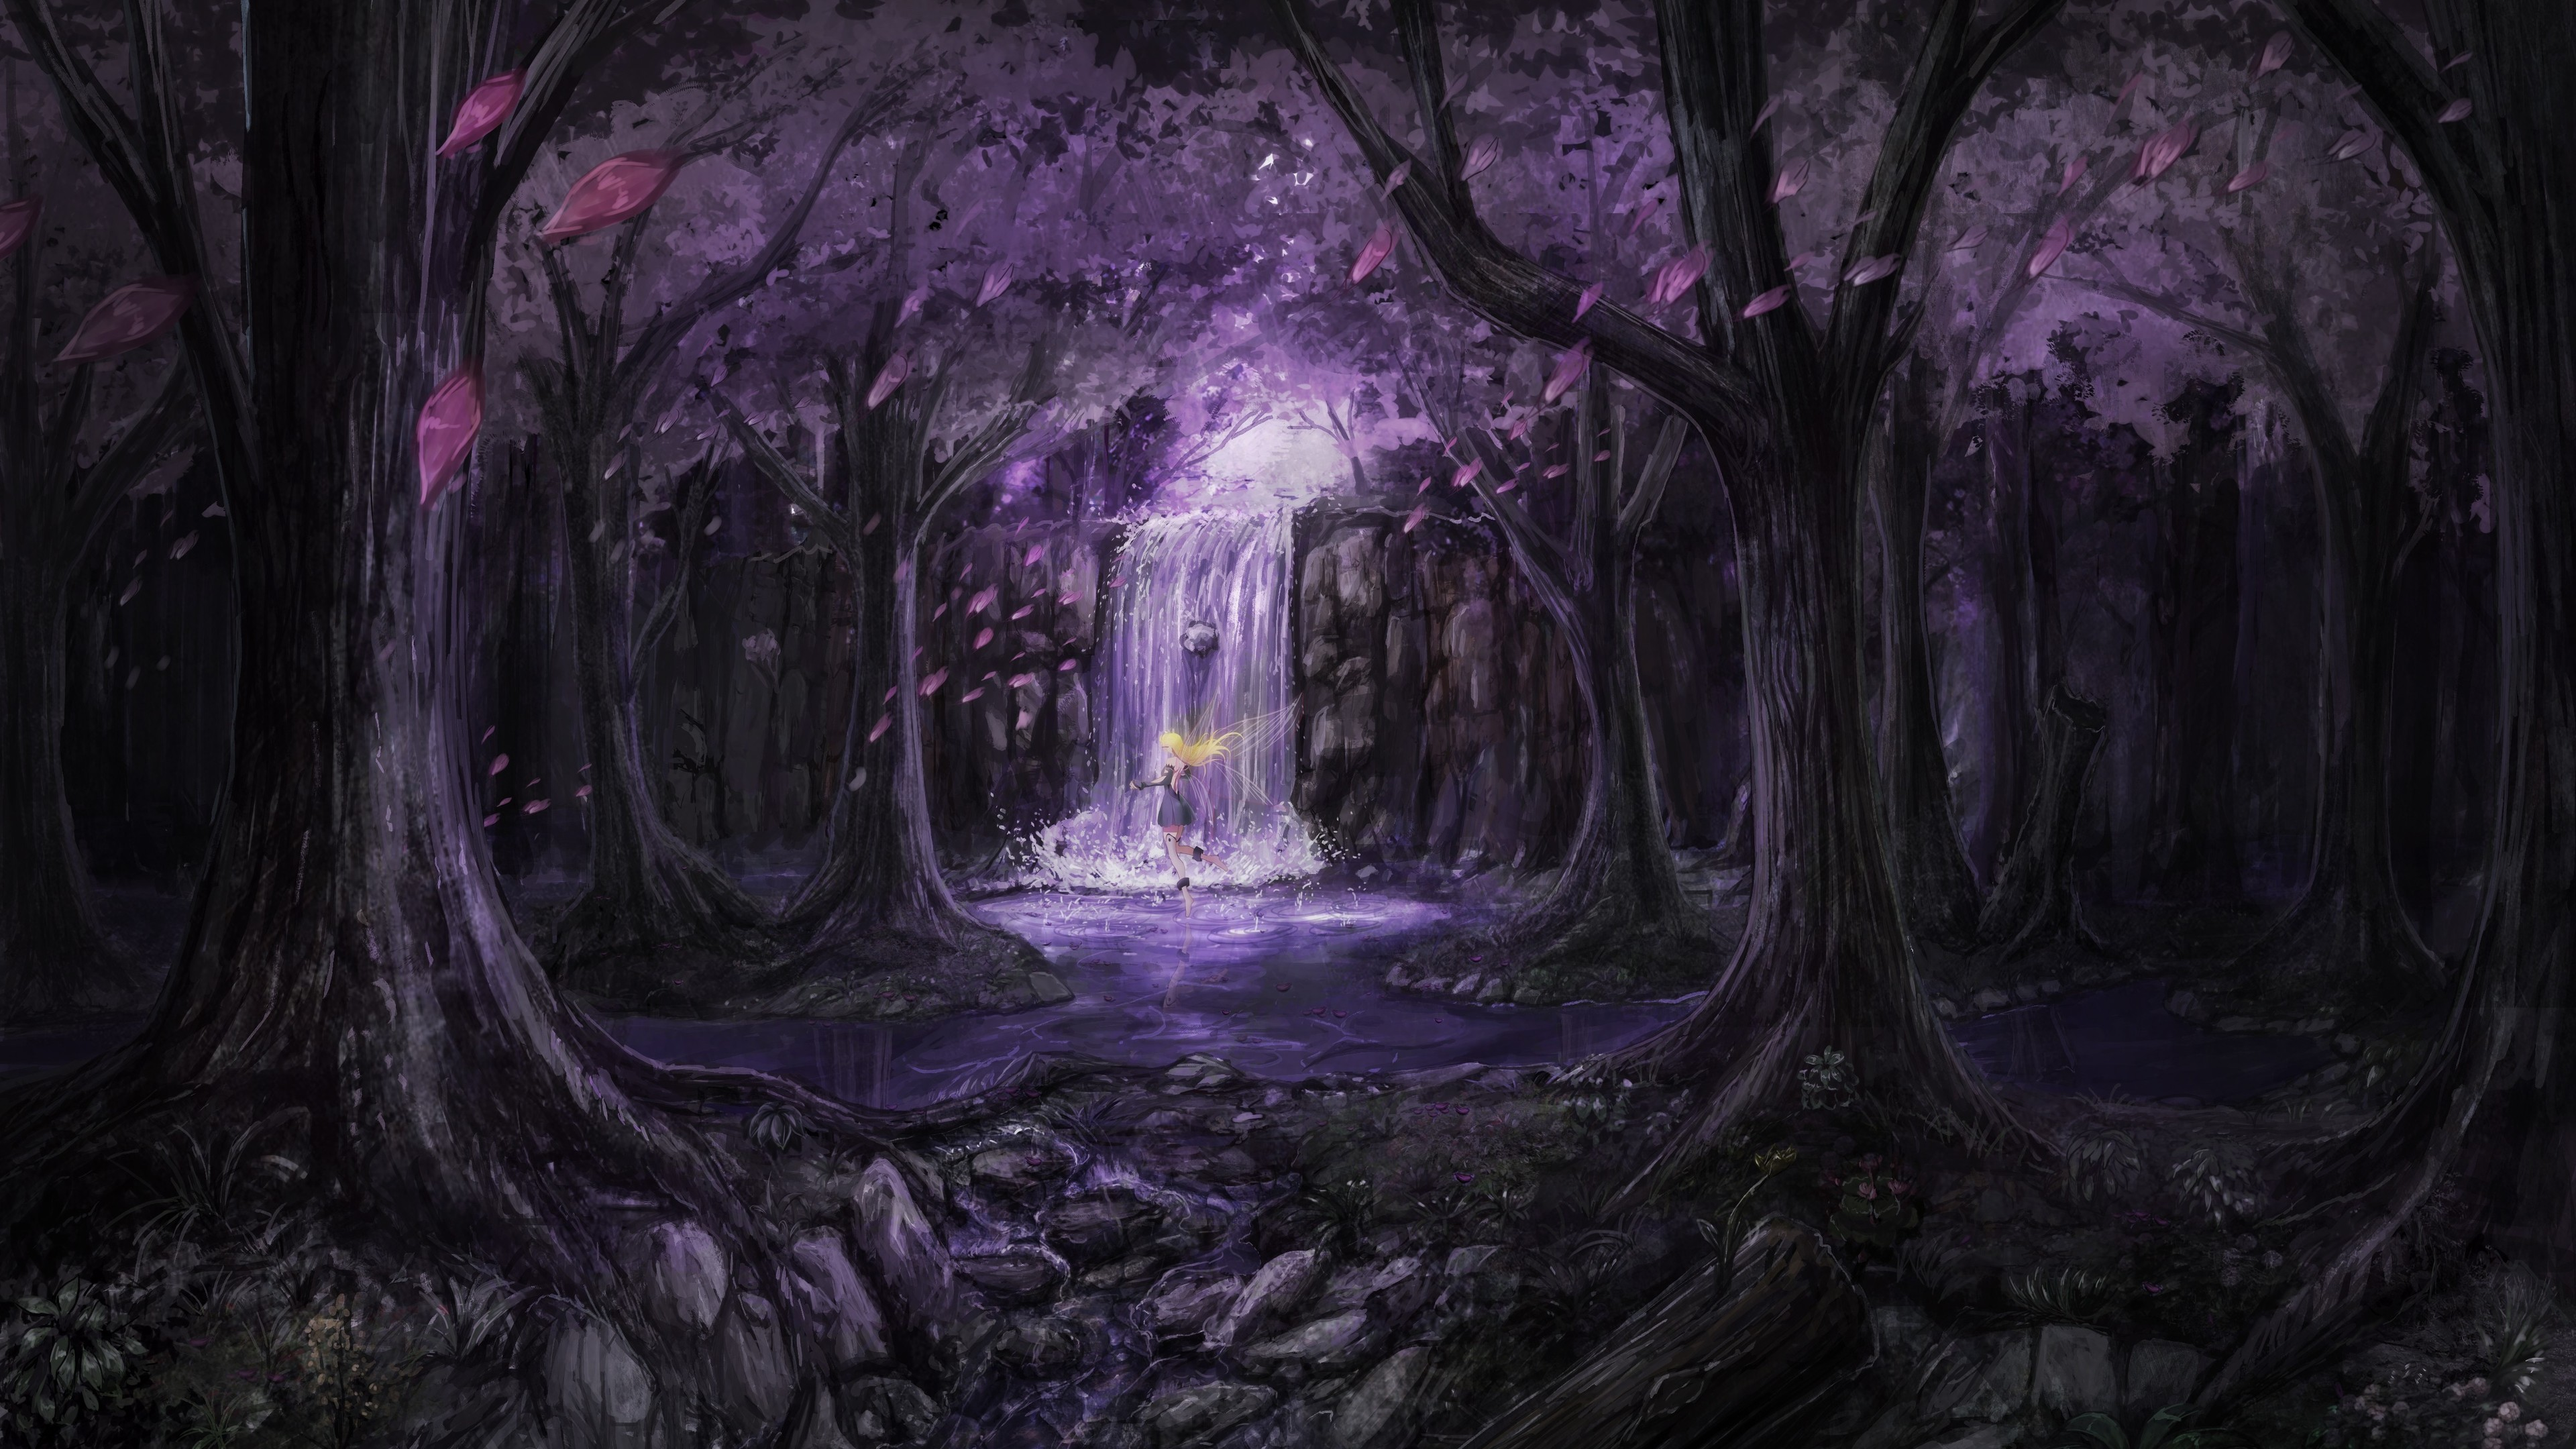 Anime Landscape Trees Dress Fairies 4k hd-wallpapers ...